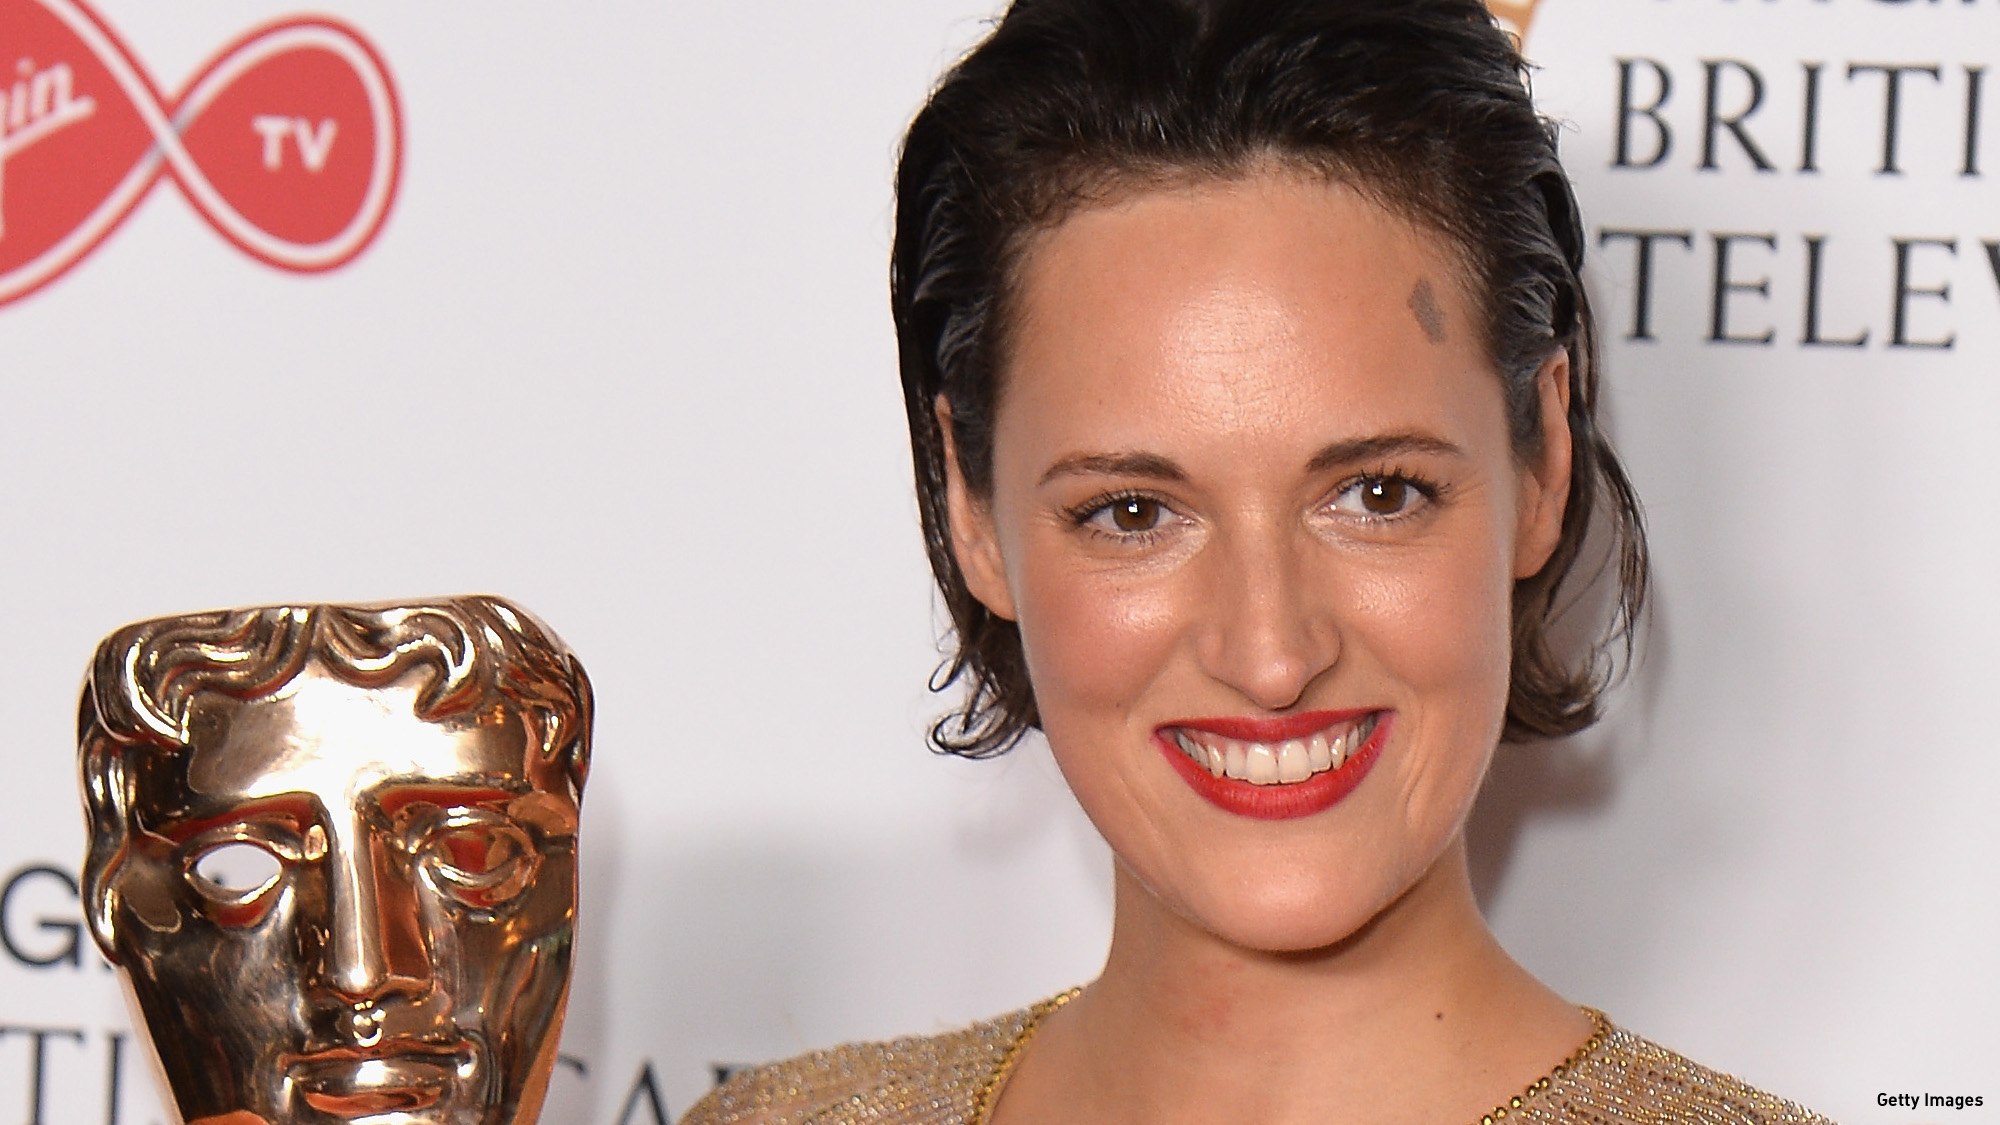 Phoebe Waller-Bridge poses with the award for Female Performance in a Comedy Programme in the Winner's room at the Virgin TV BAFTA Television Awards at The Royal Festival Hall on May 14, 2017 in London, England.